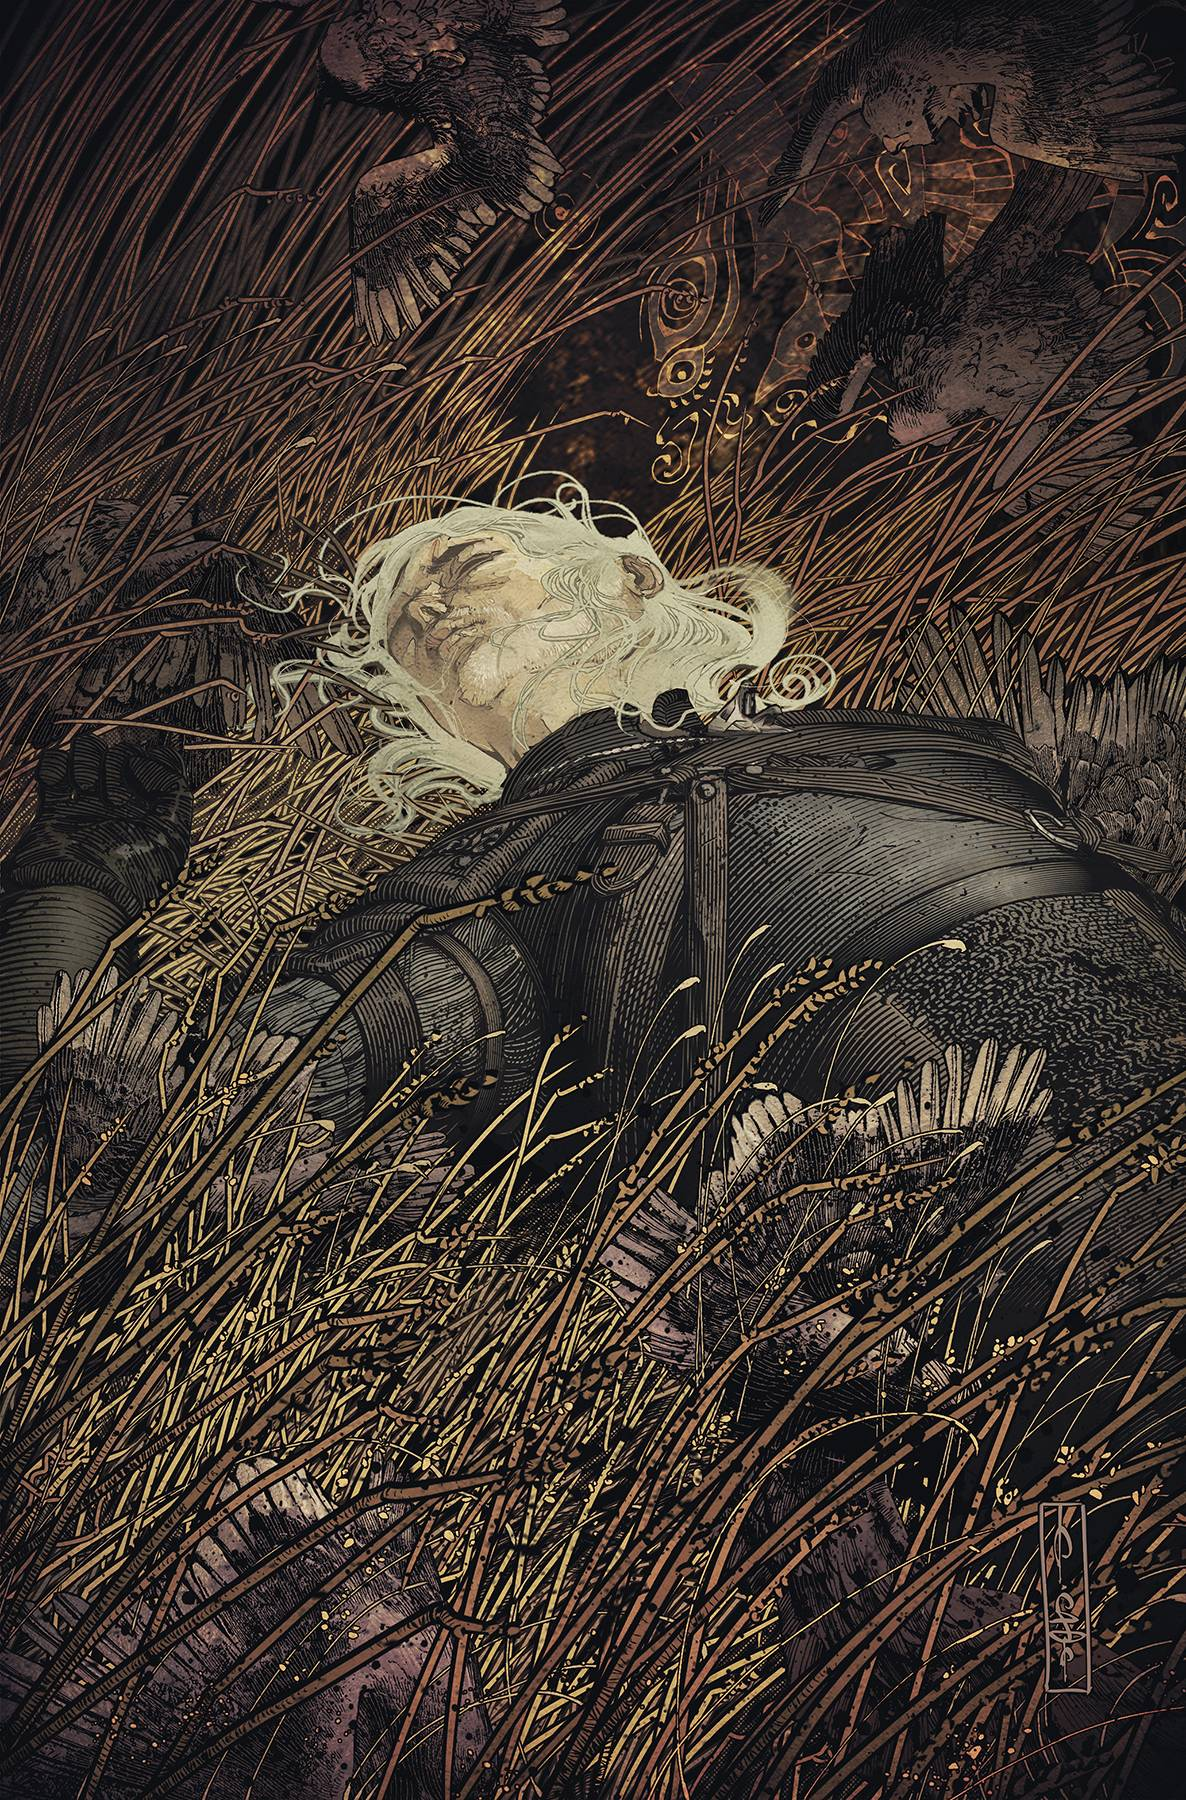 WITCHER FADING MEMORIES